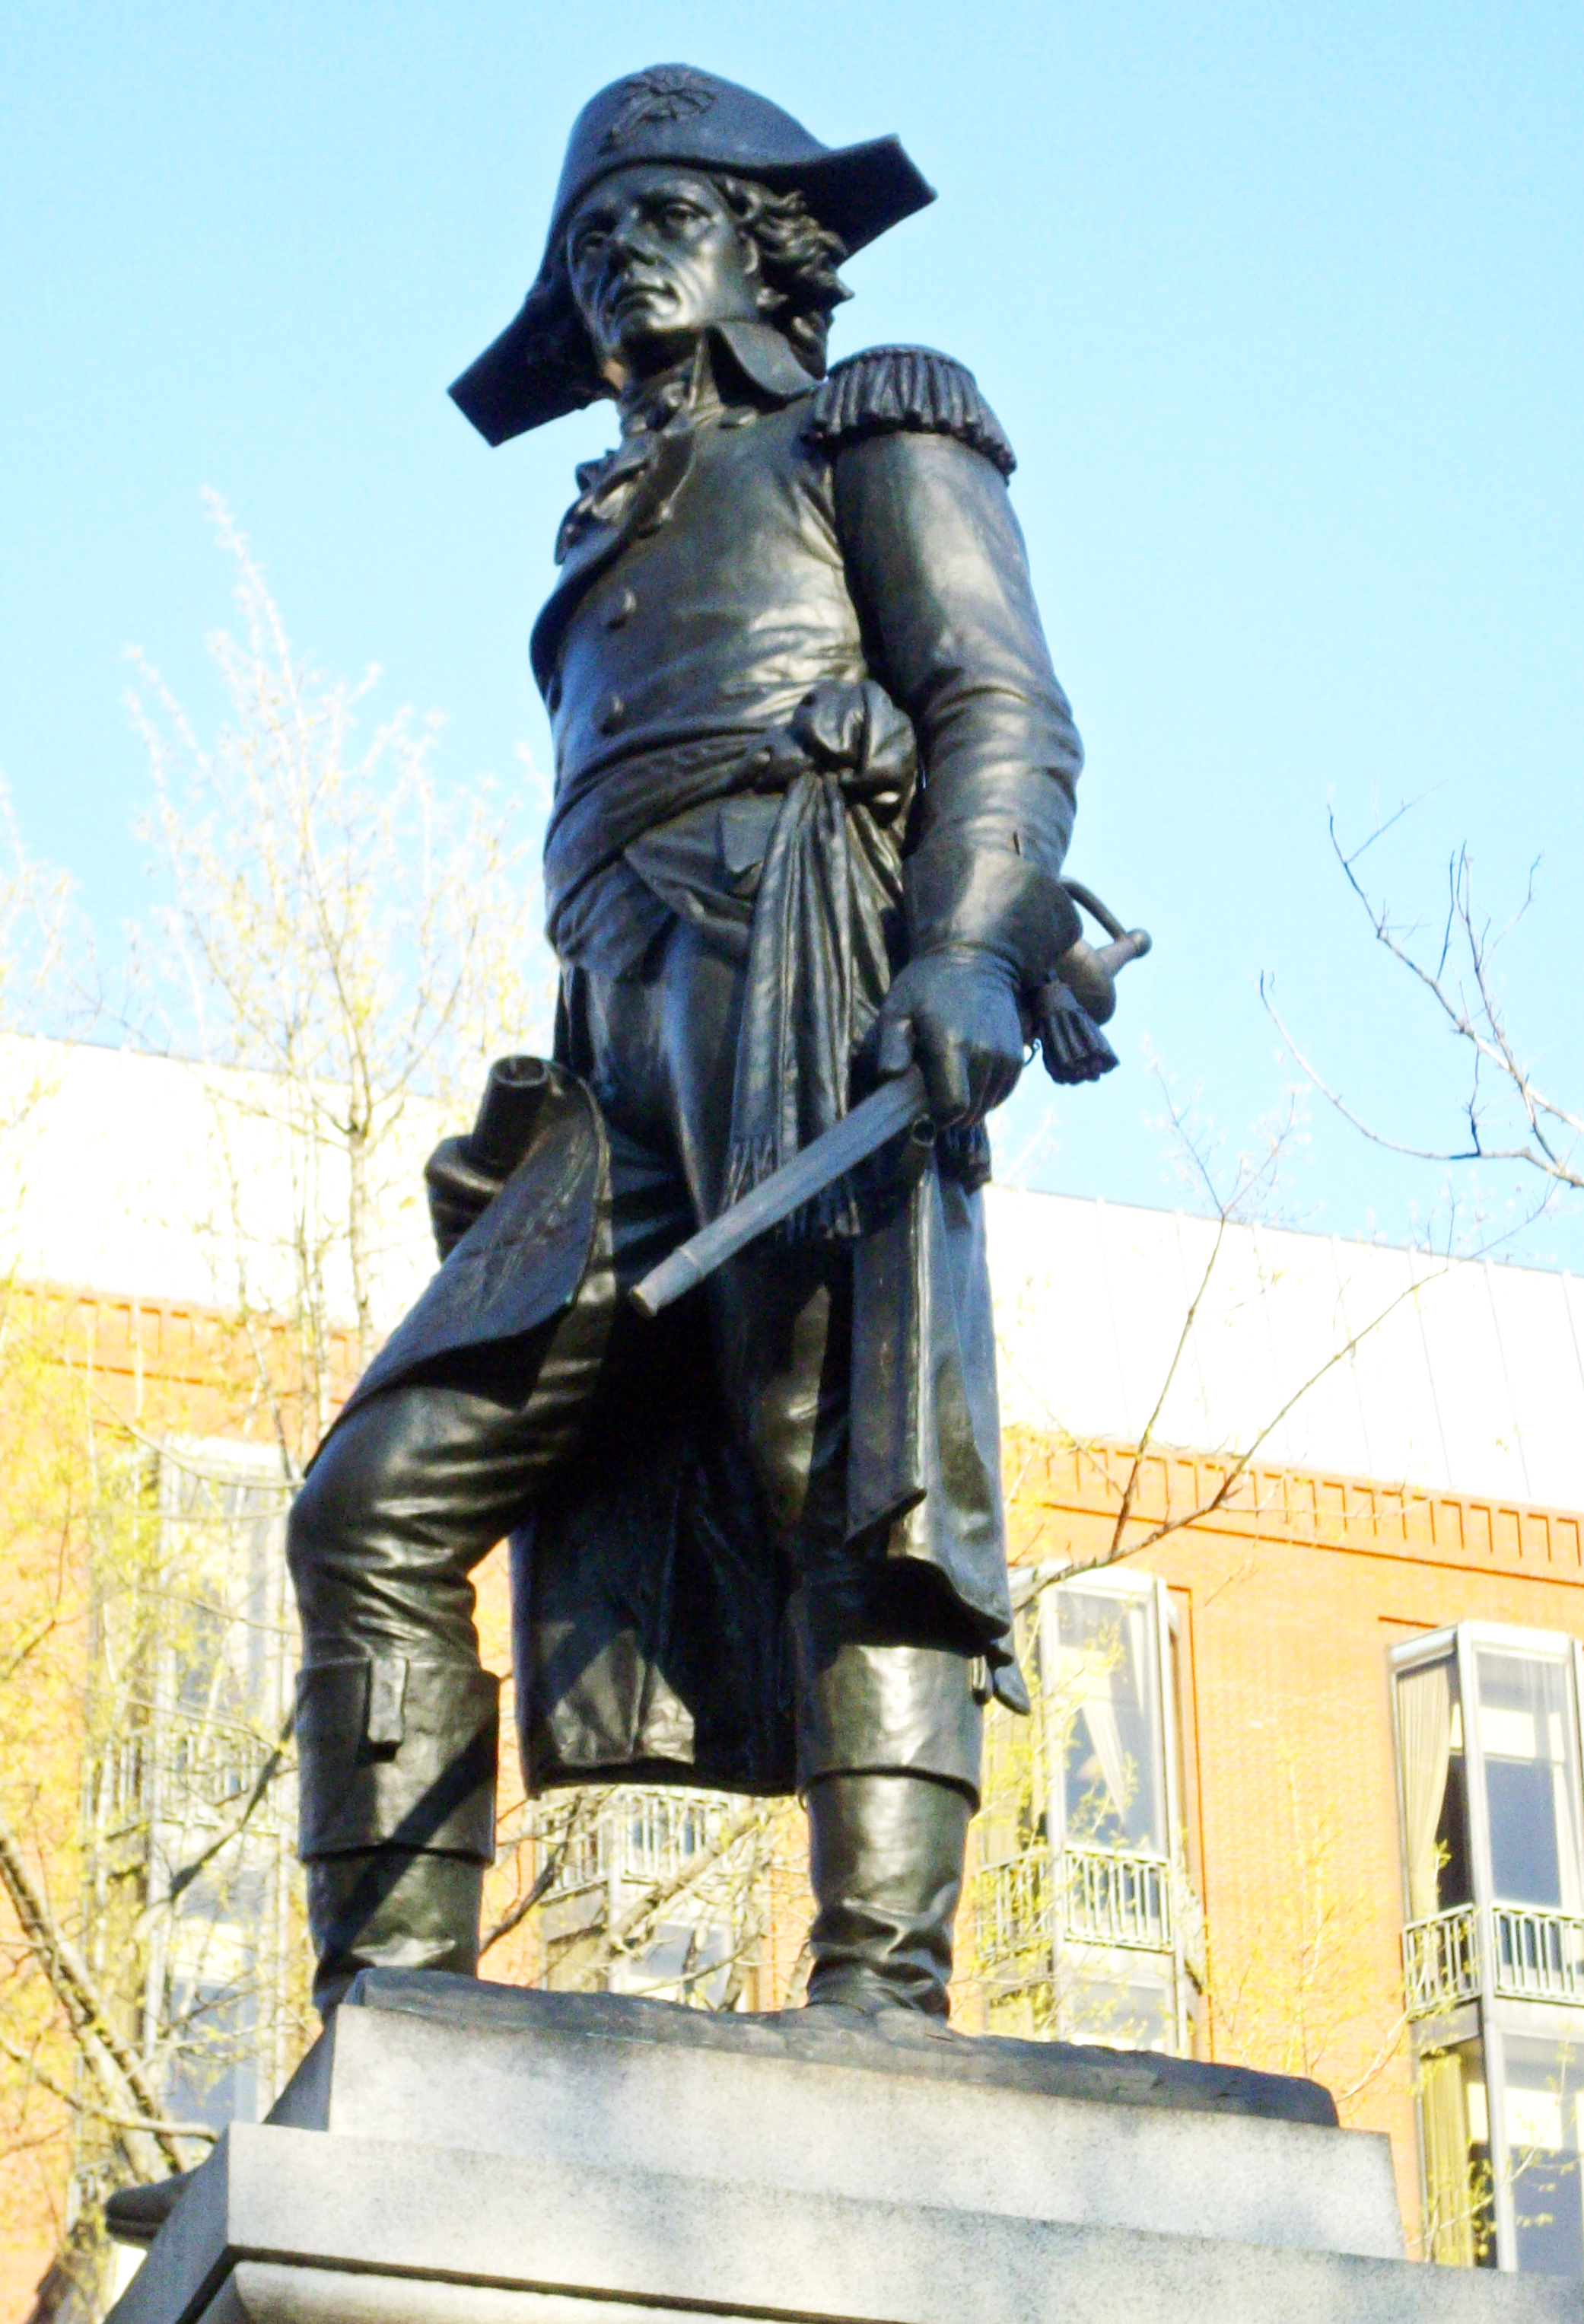 The statue of Thaddeus Kosciuszko in Lafayette Park.